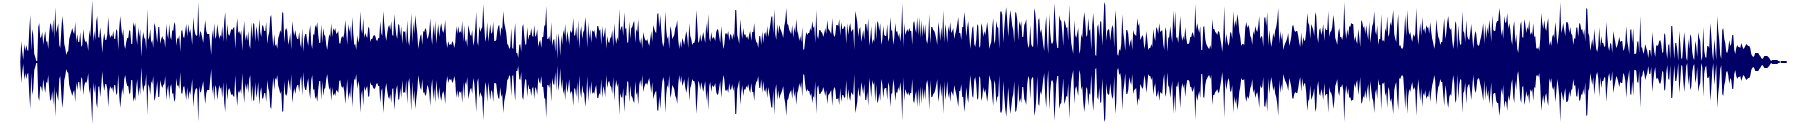 waveform of track #72484